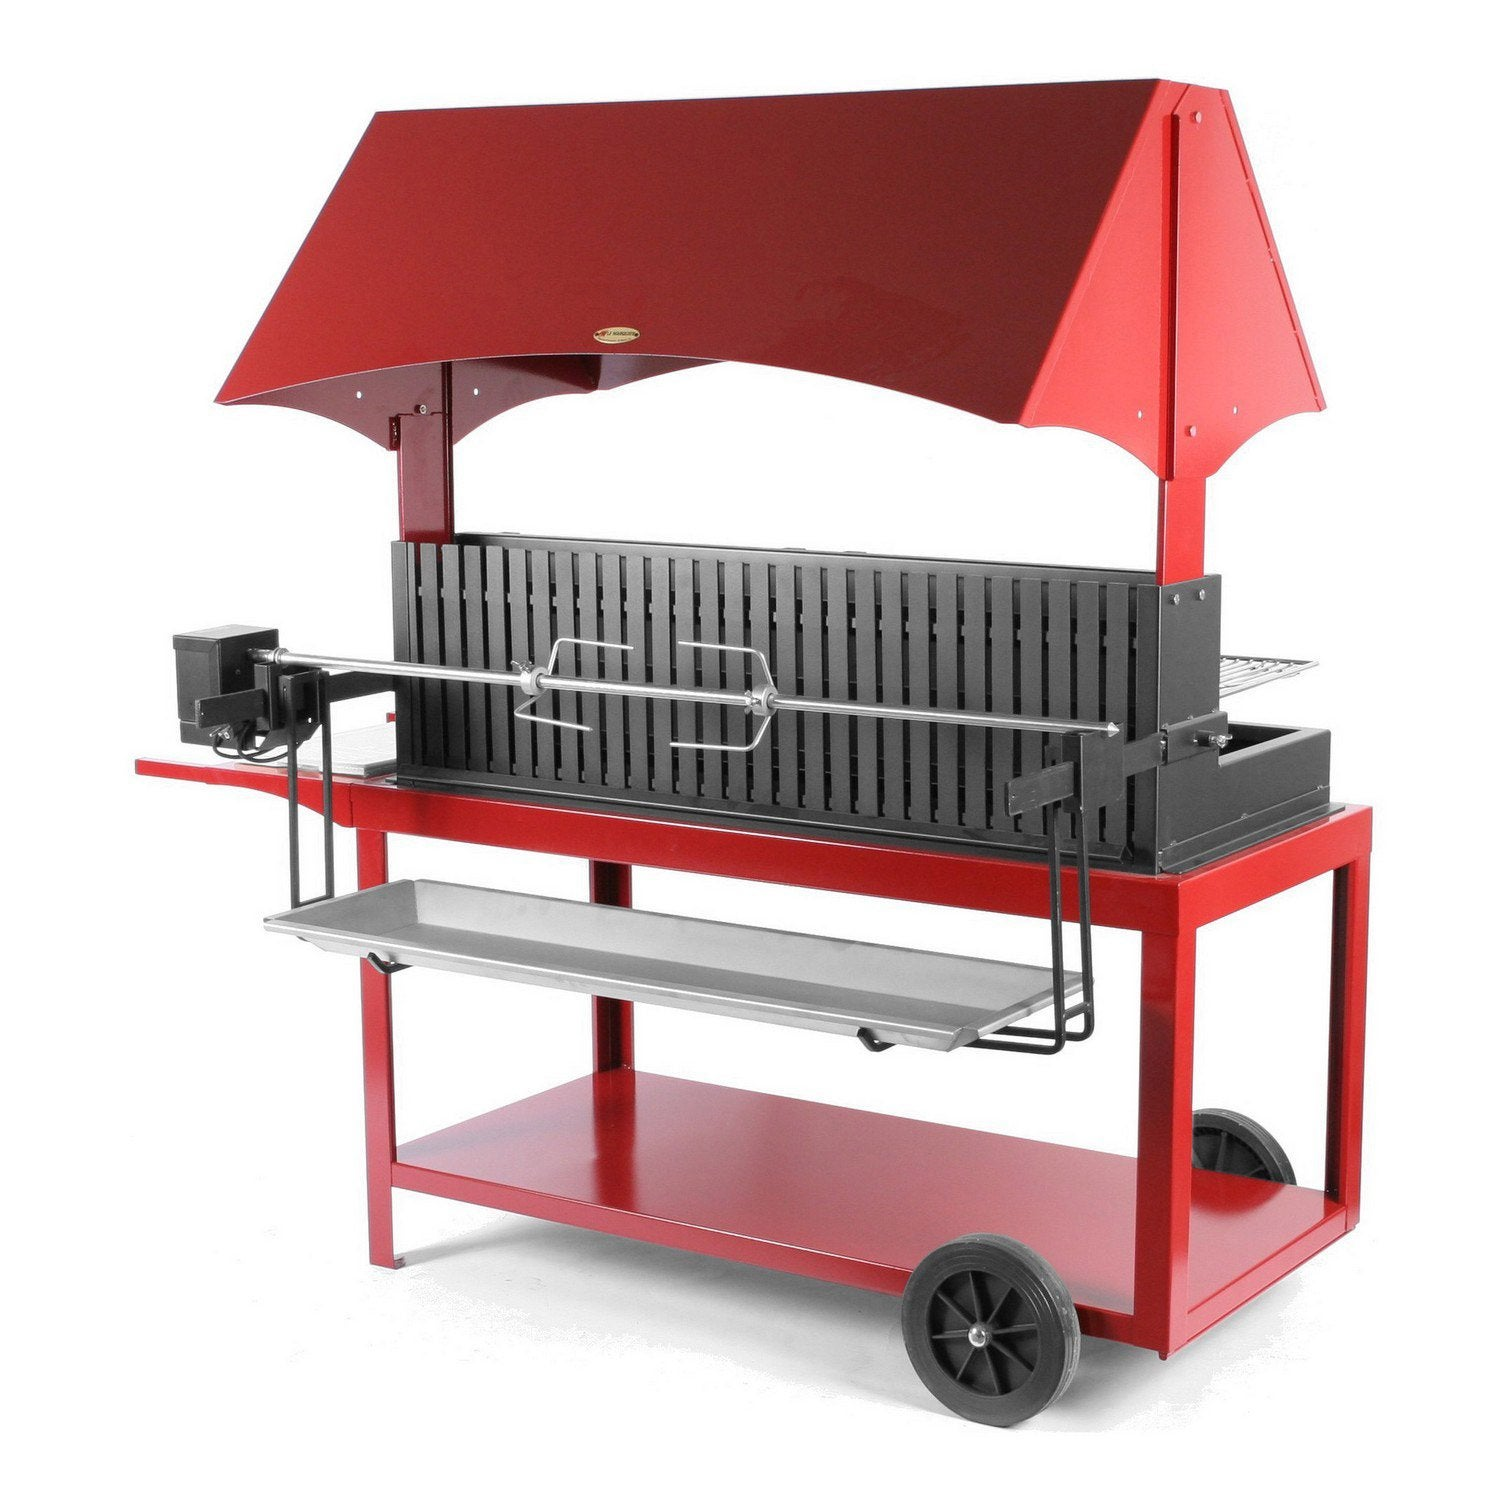 Barbecue au charbon de bois lemarquier mechoui leroy merlin for Barbecue exterieur leroy merlin